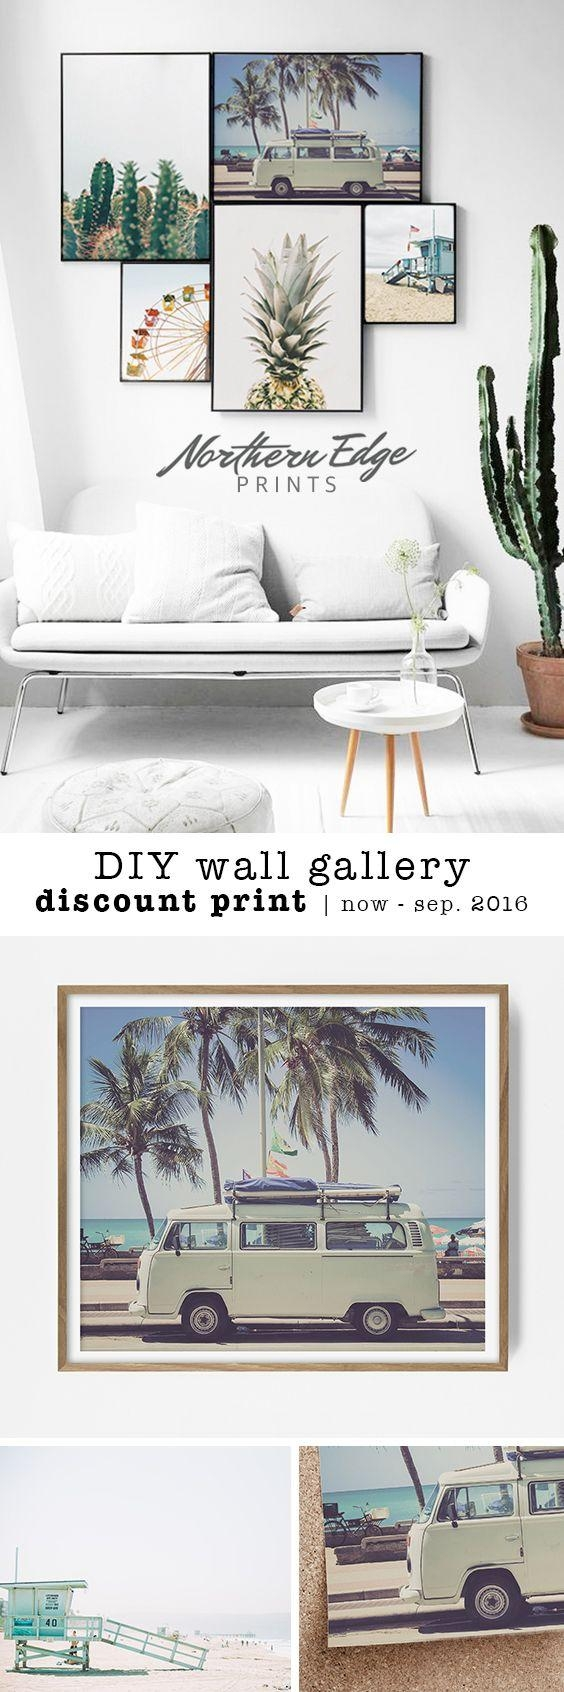 Best 25+ Beach Wall Art Ideas On Pinterest | Beach Decorations Pertaining To Beach Themed Wall Art (Image 5 of 20)